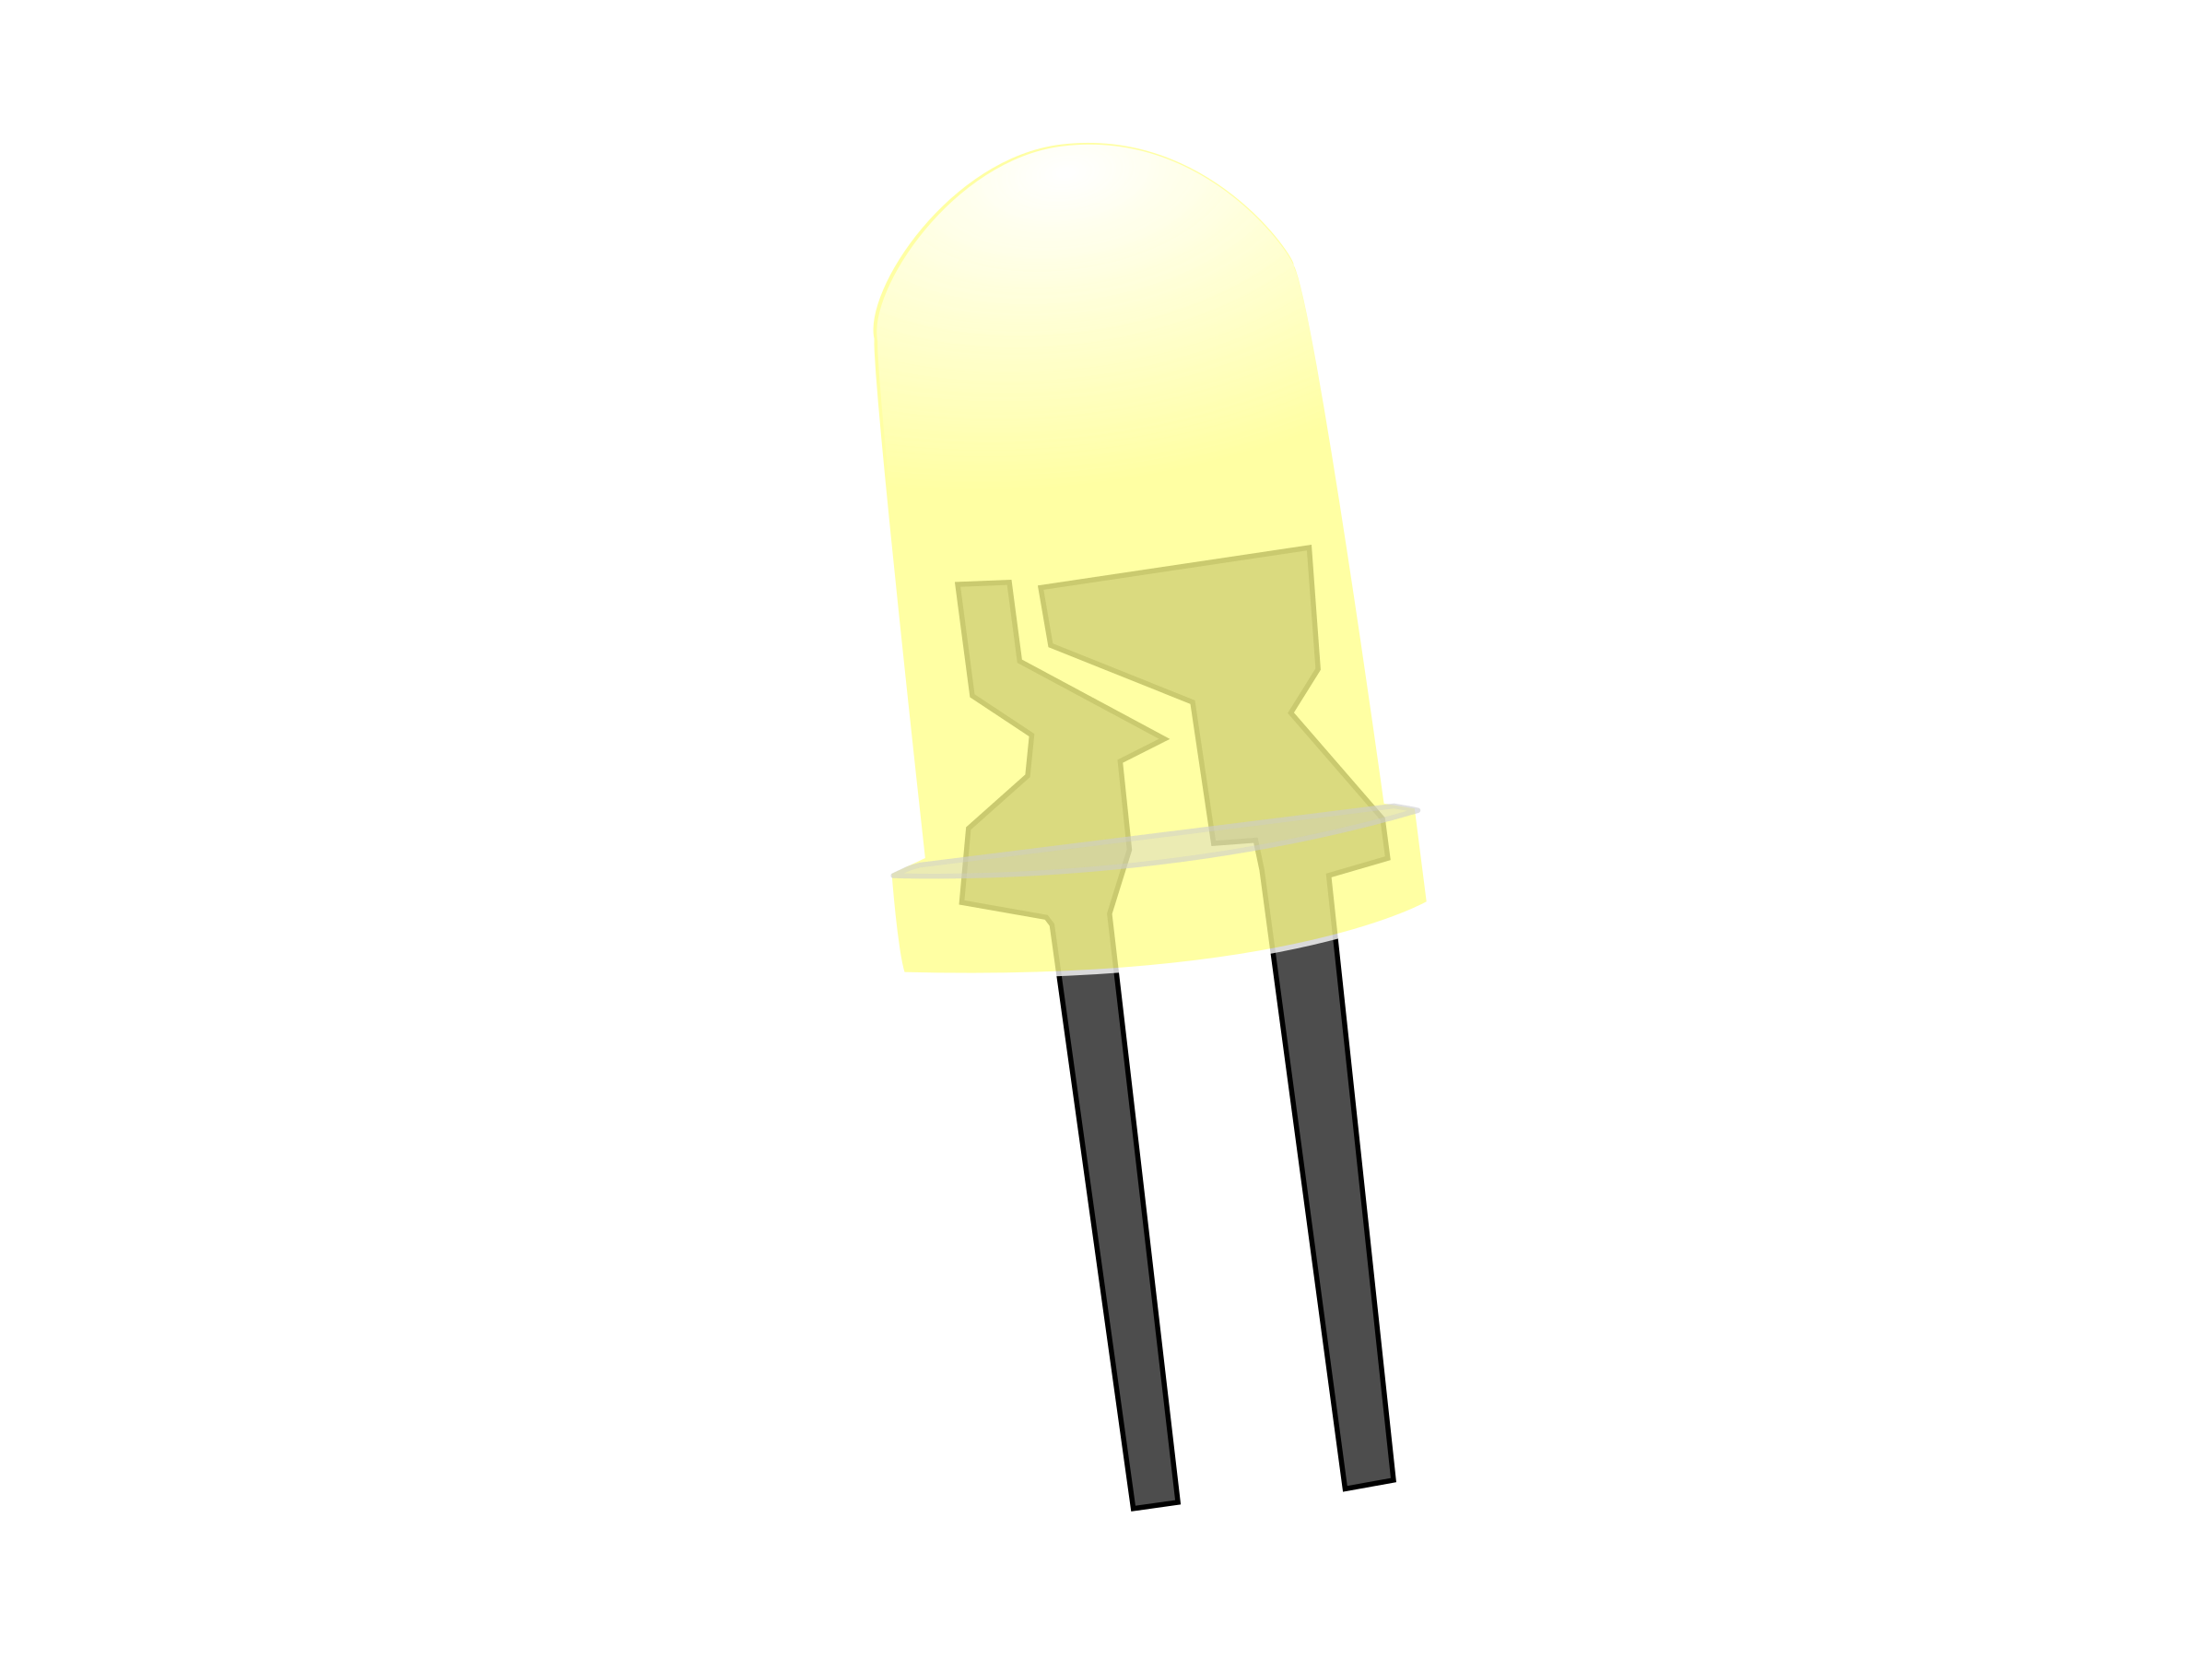 Yellow LED Lamp (On) by howardthegeek